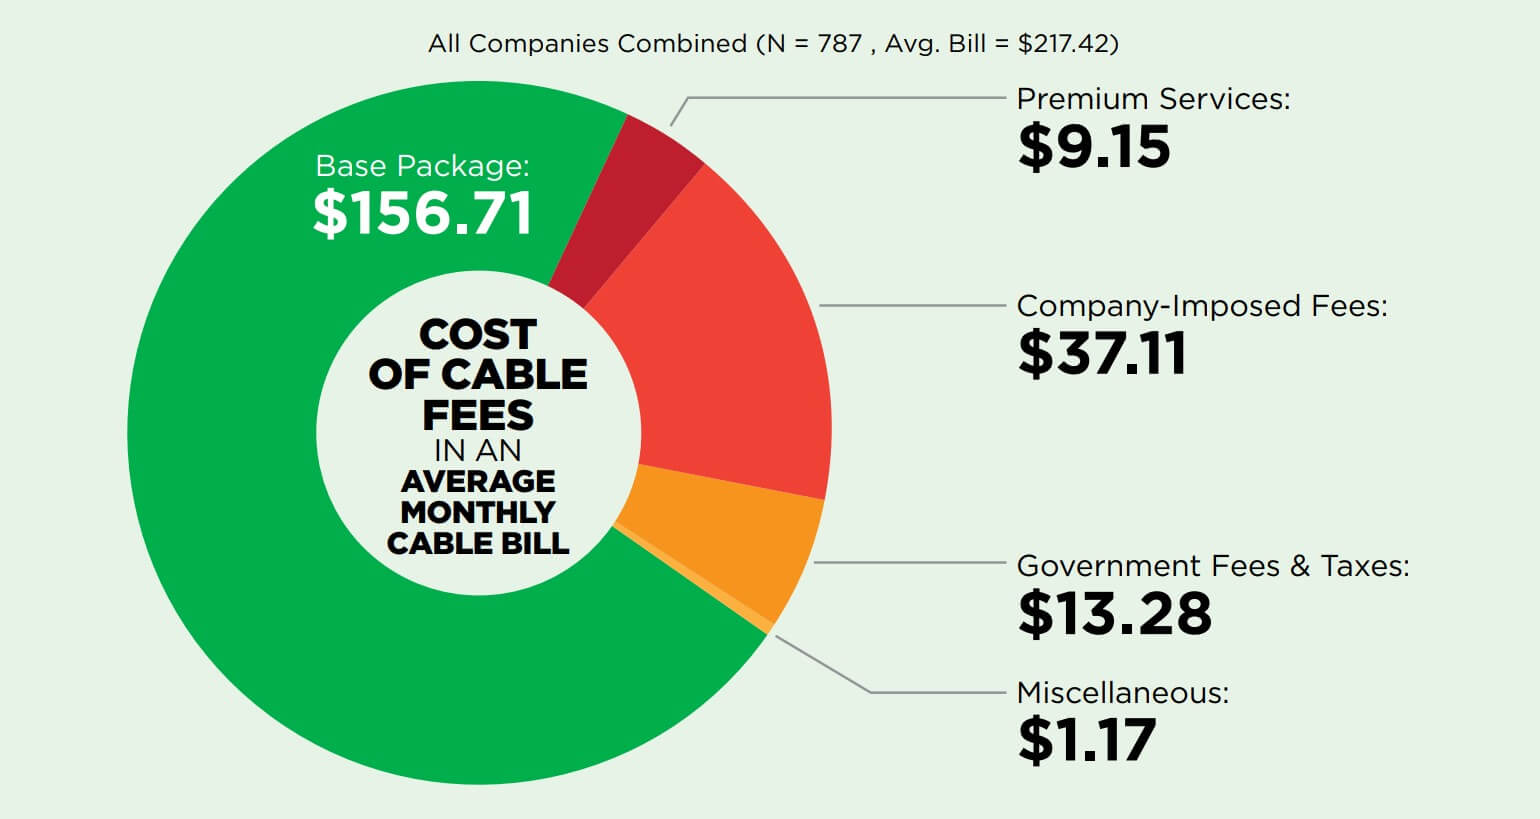 Cable companies use hidden fees to raise prices as much as 24% a month